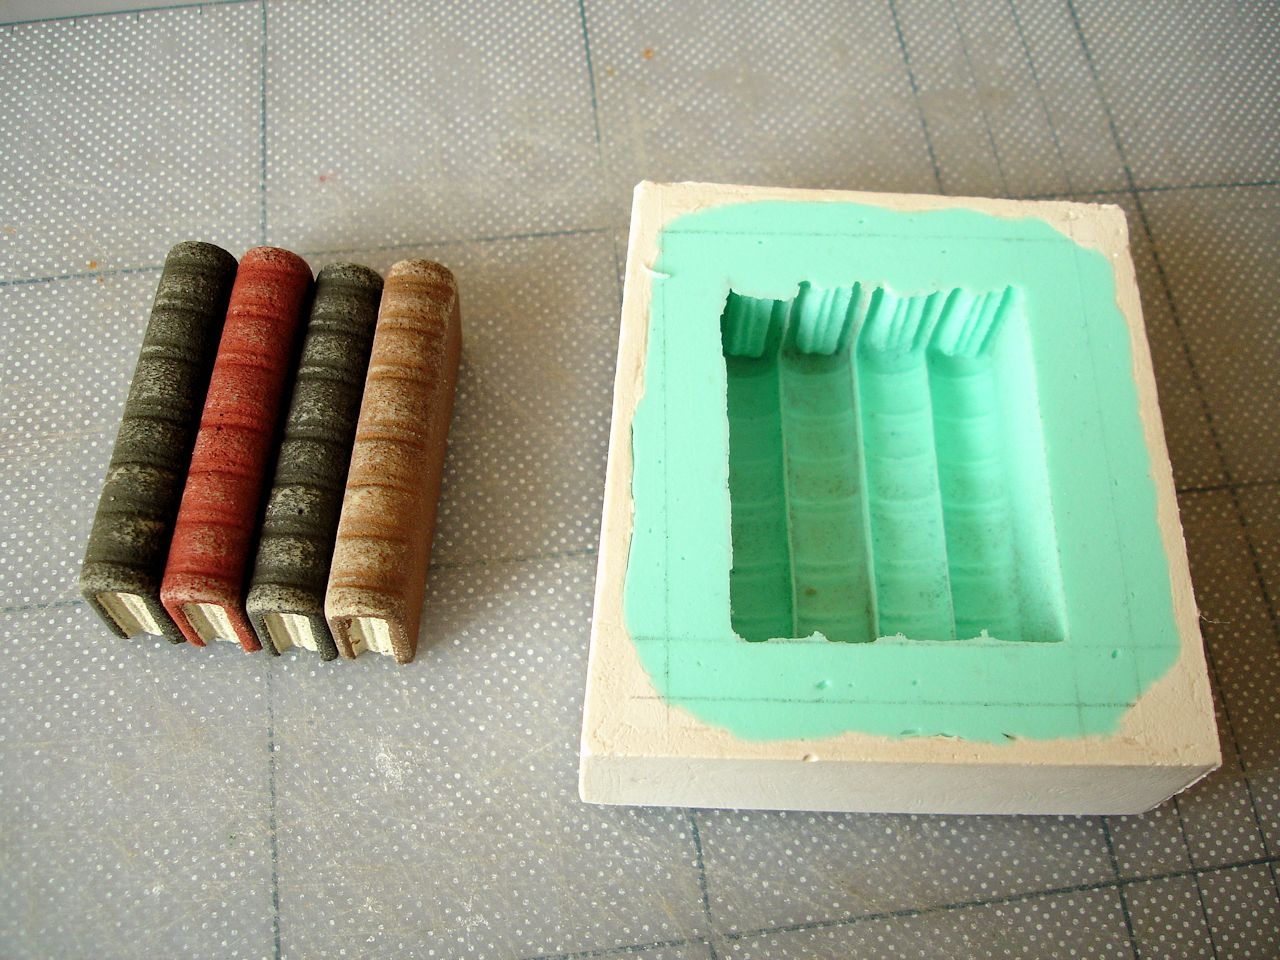 David Neat, prototype and mould for 'book blocks'